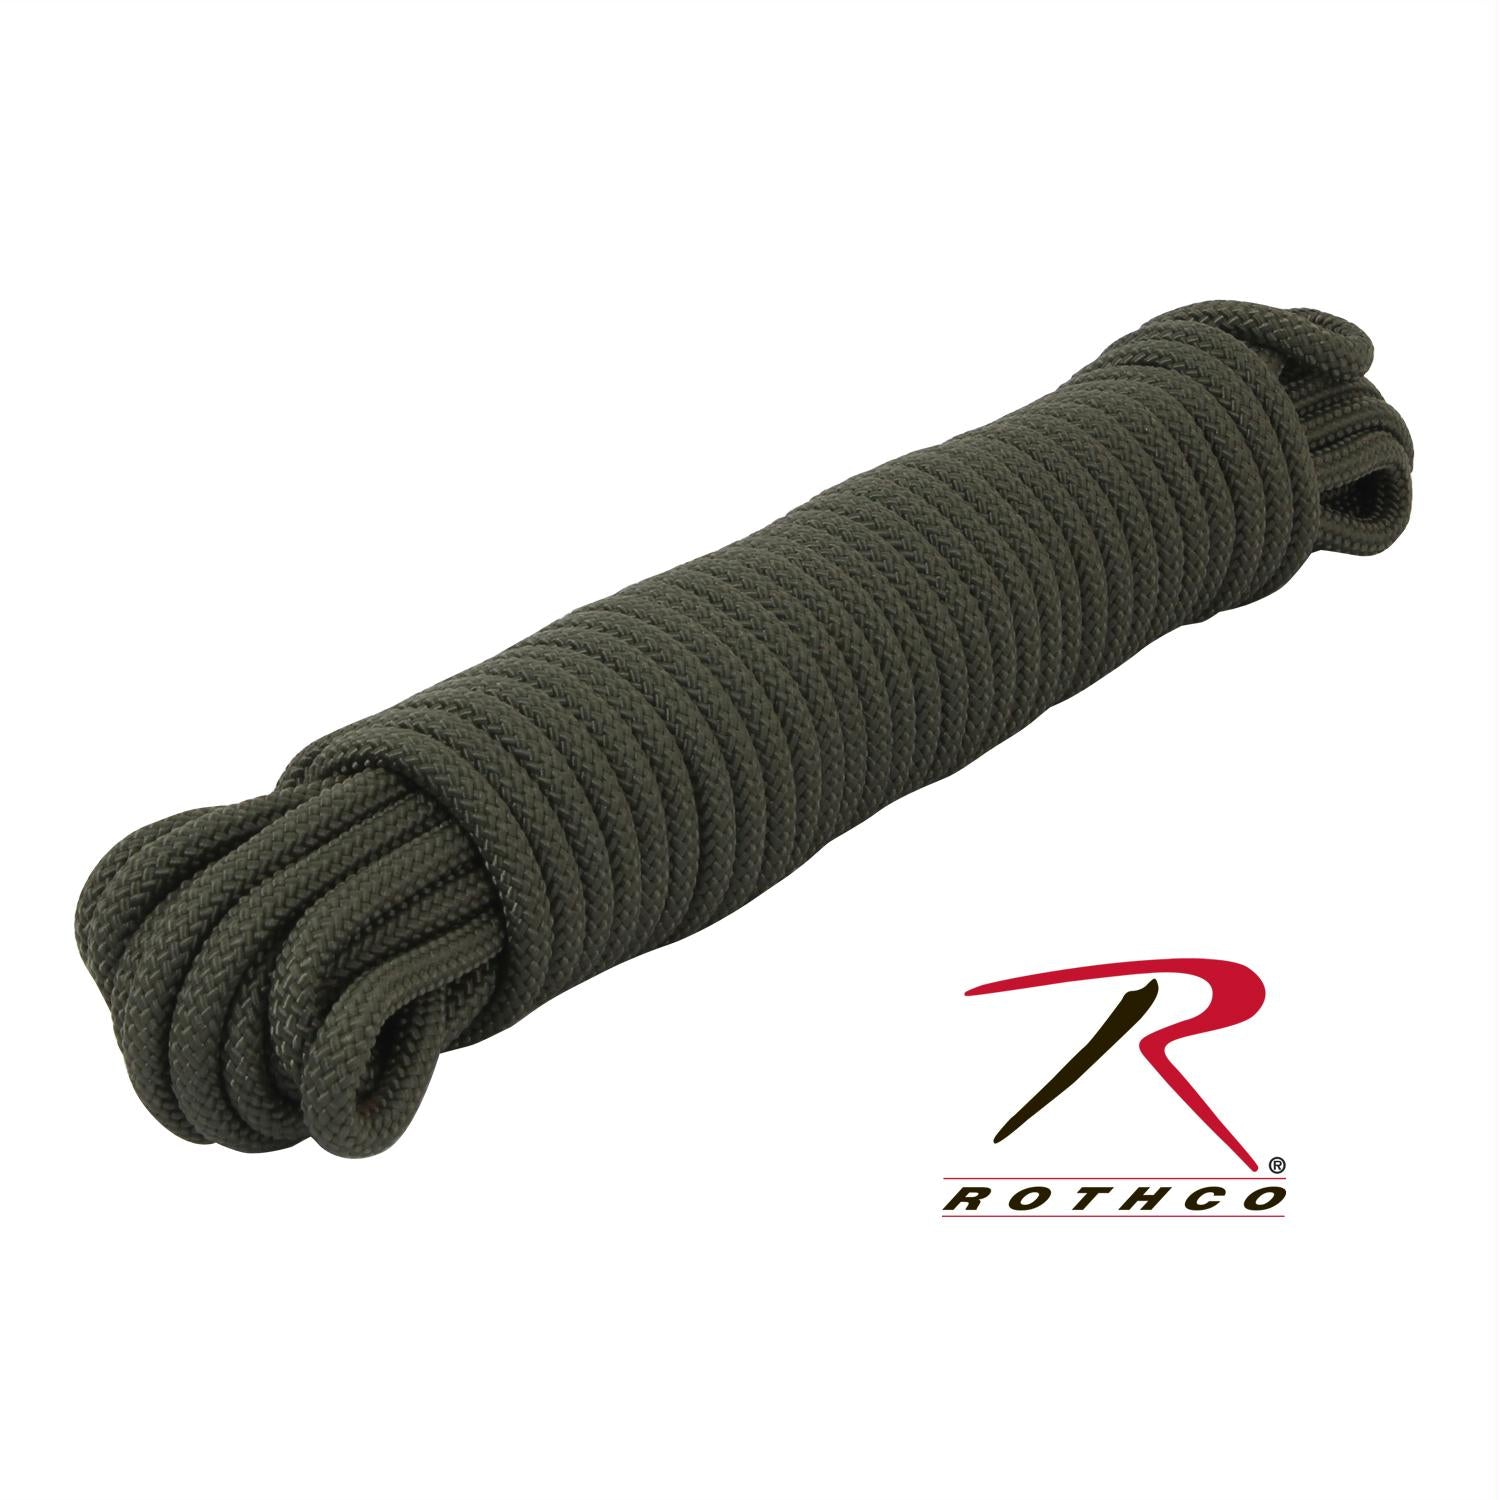 Rothco Utility Rope - Olive Drab / 50'